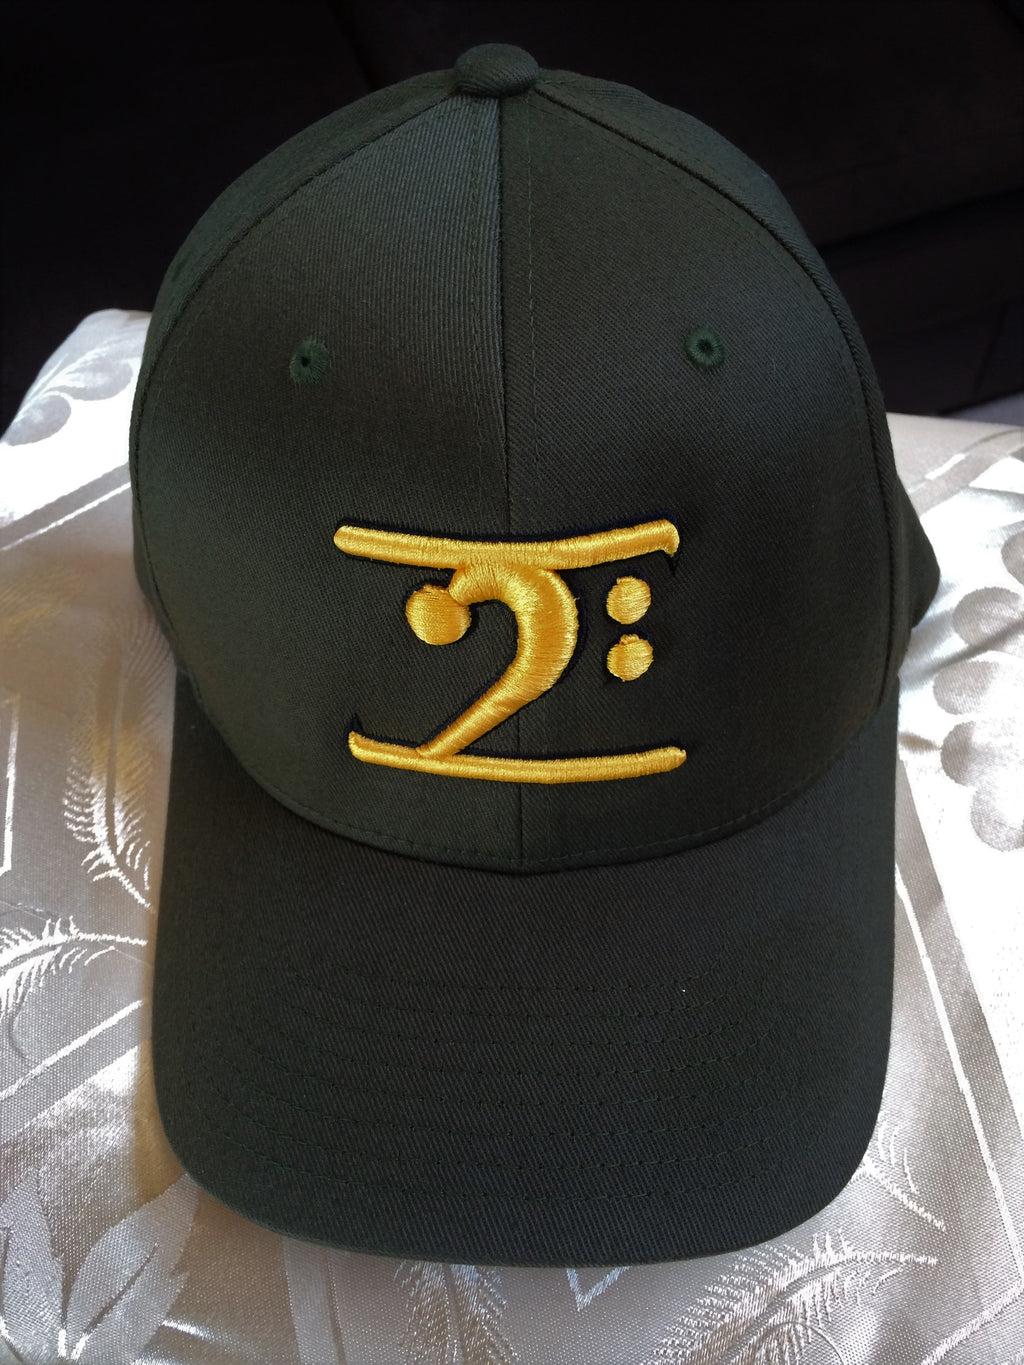 BLACK LOGO CAP - GOLD LOGO BLACK TRIM - Lathon Bass Wear